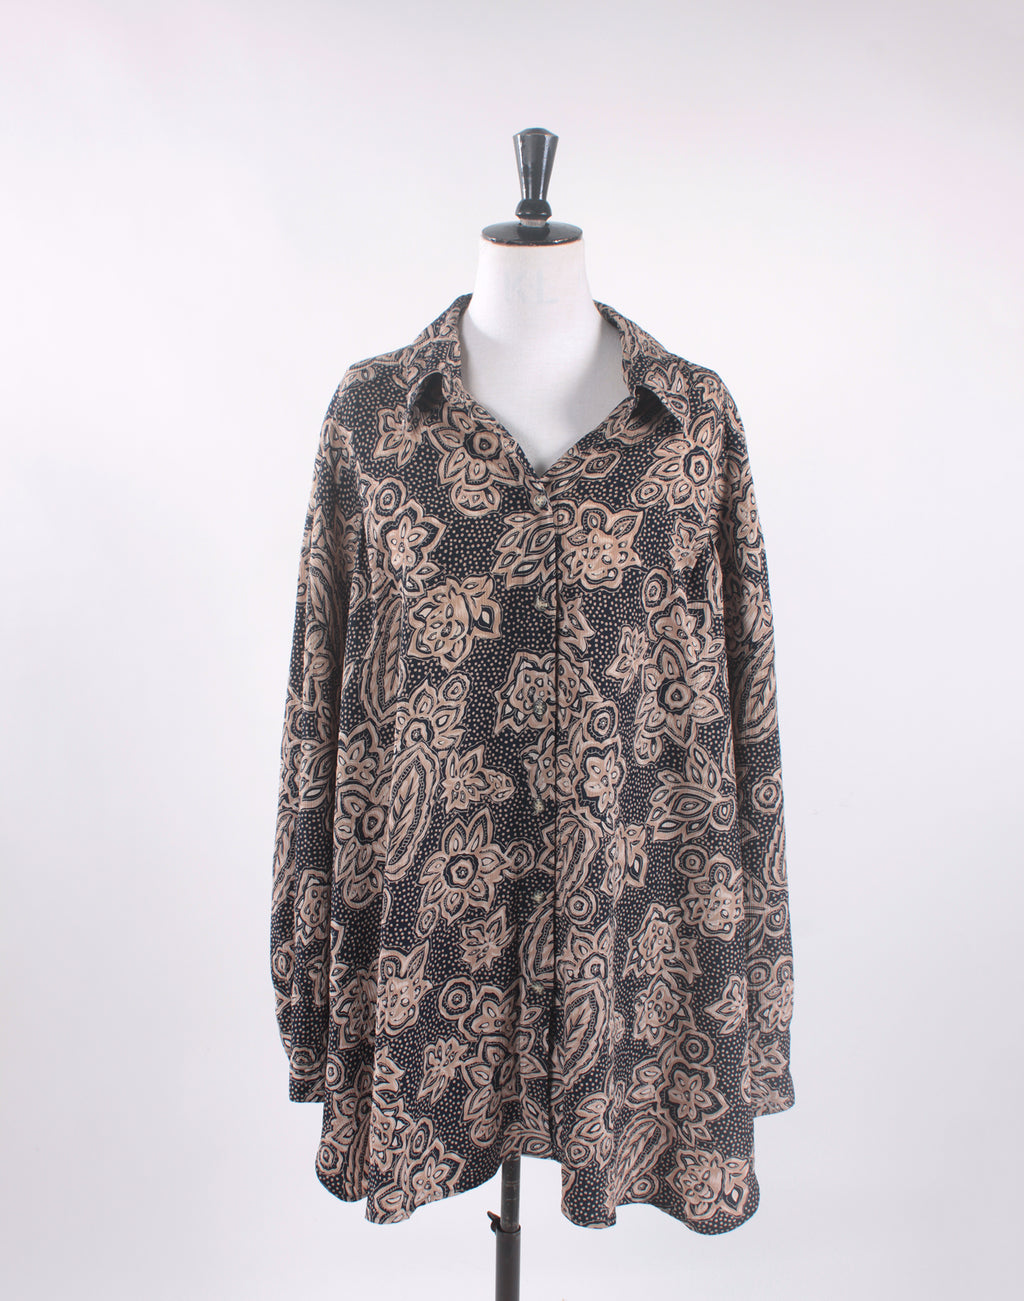 Vintage 80's Navy Brown Floral Oversize Long Sleeve Shirt